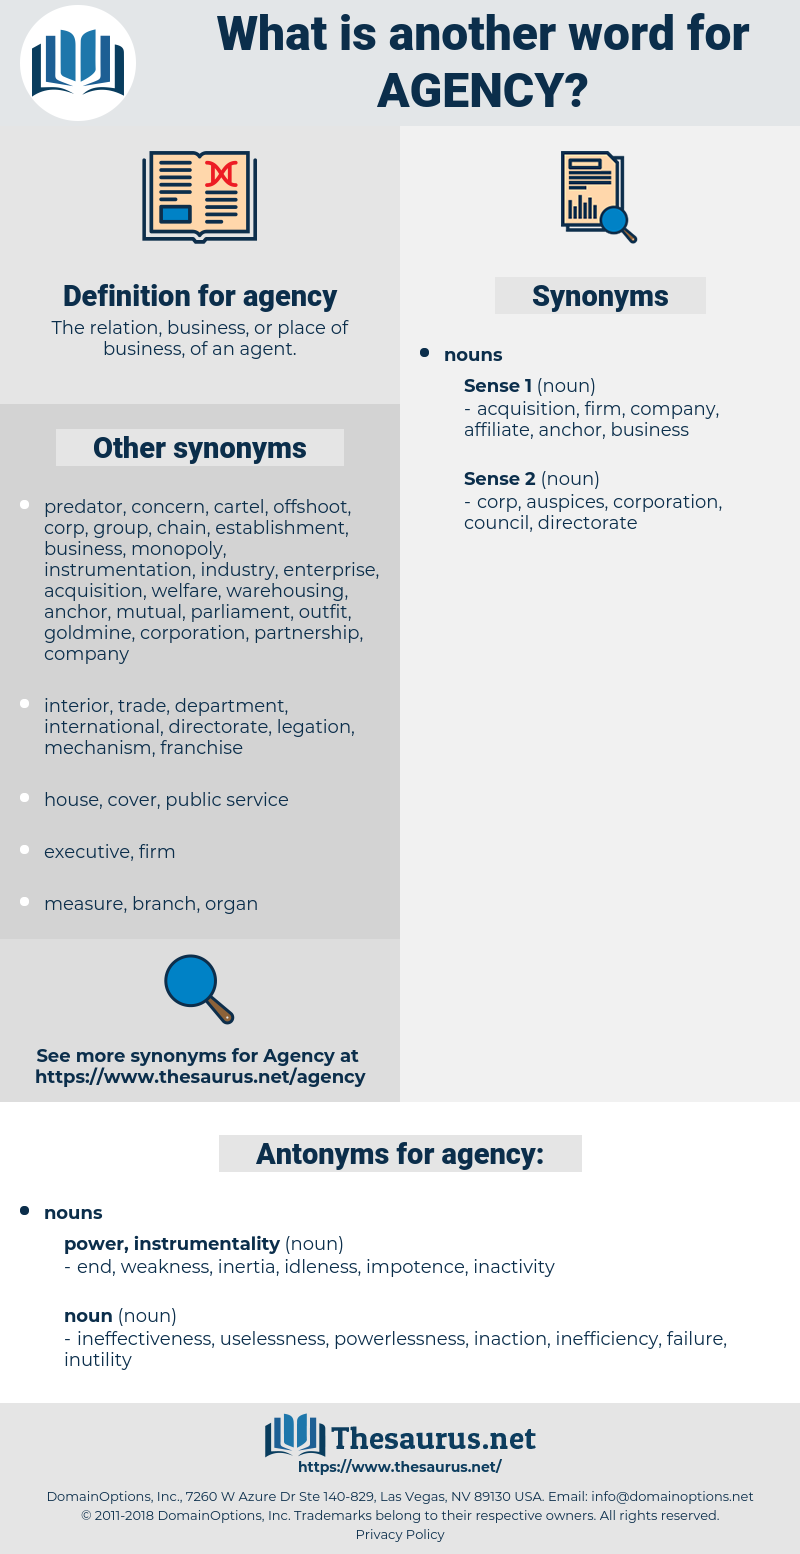 agency, synonym agency, another word for agency, words like agency, thesaurus agency